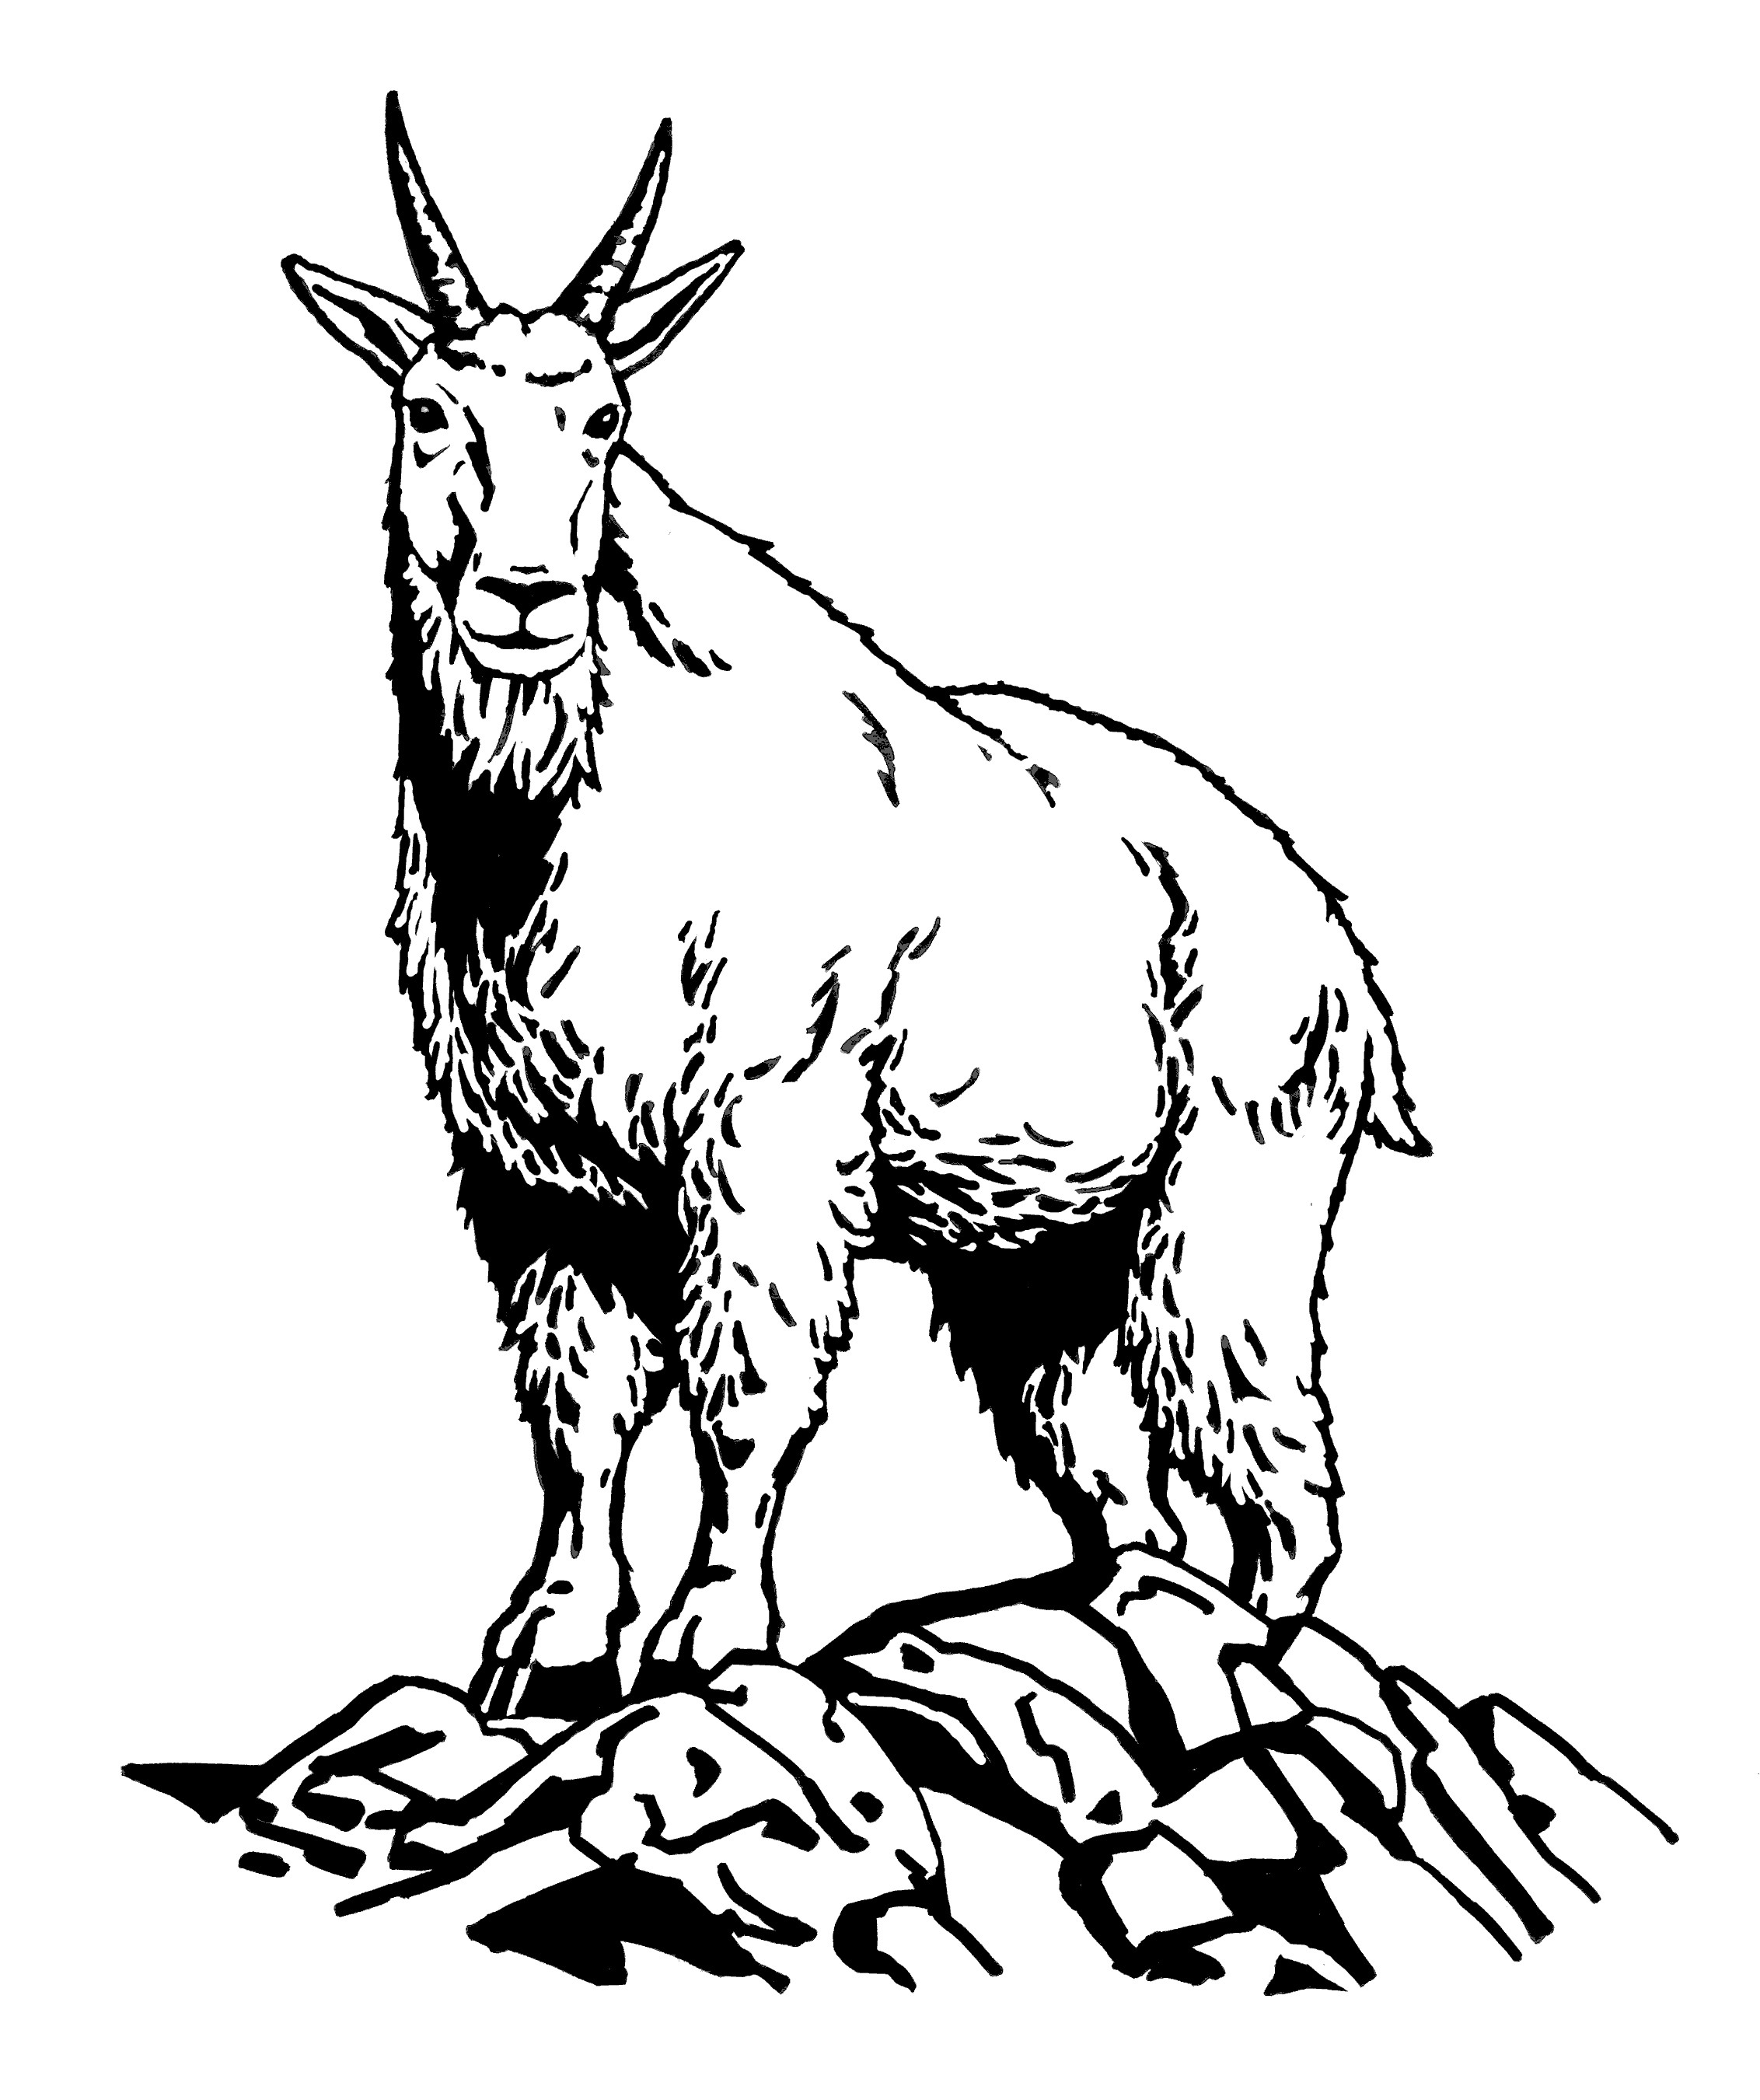 goat sketch how to draw a goat step by step guide sketch goat